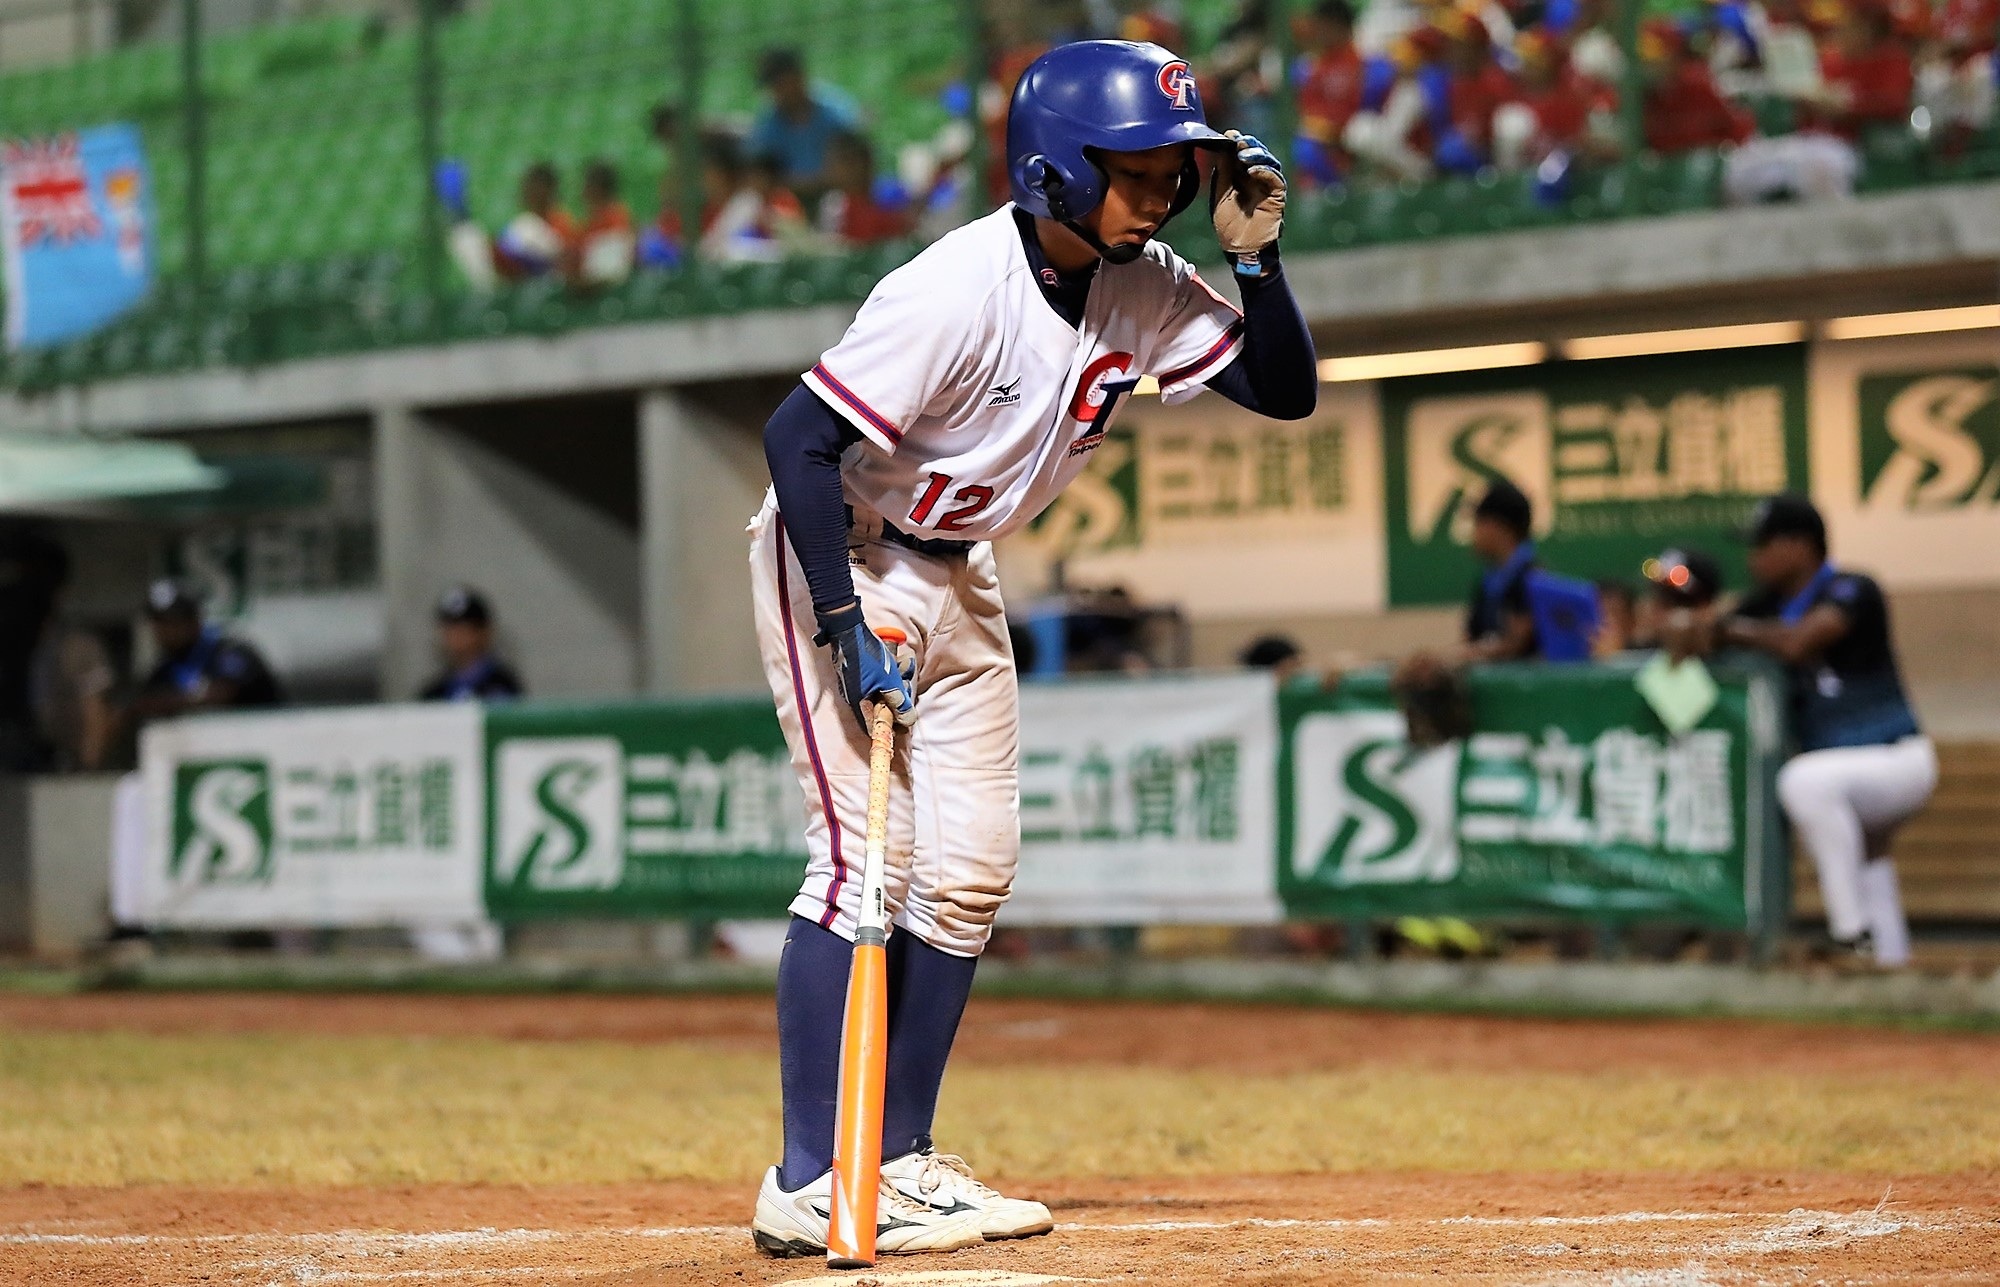 Chinese Taipei  played withe respect, but trying to score runs